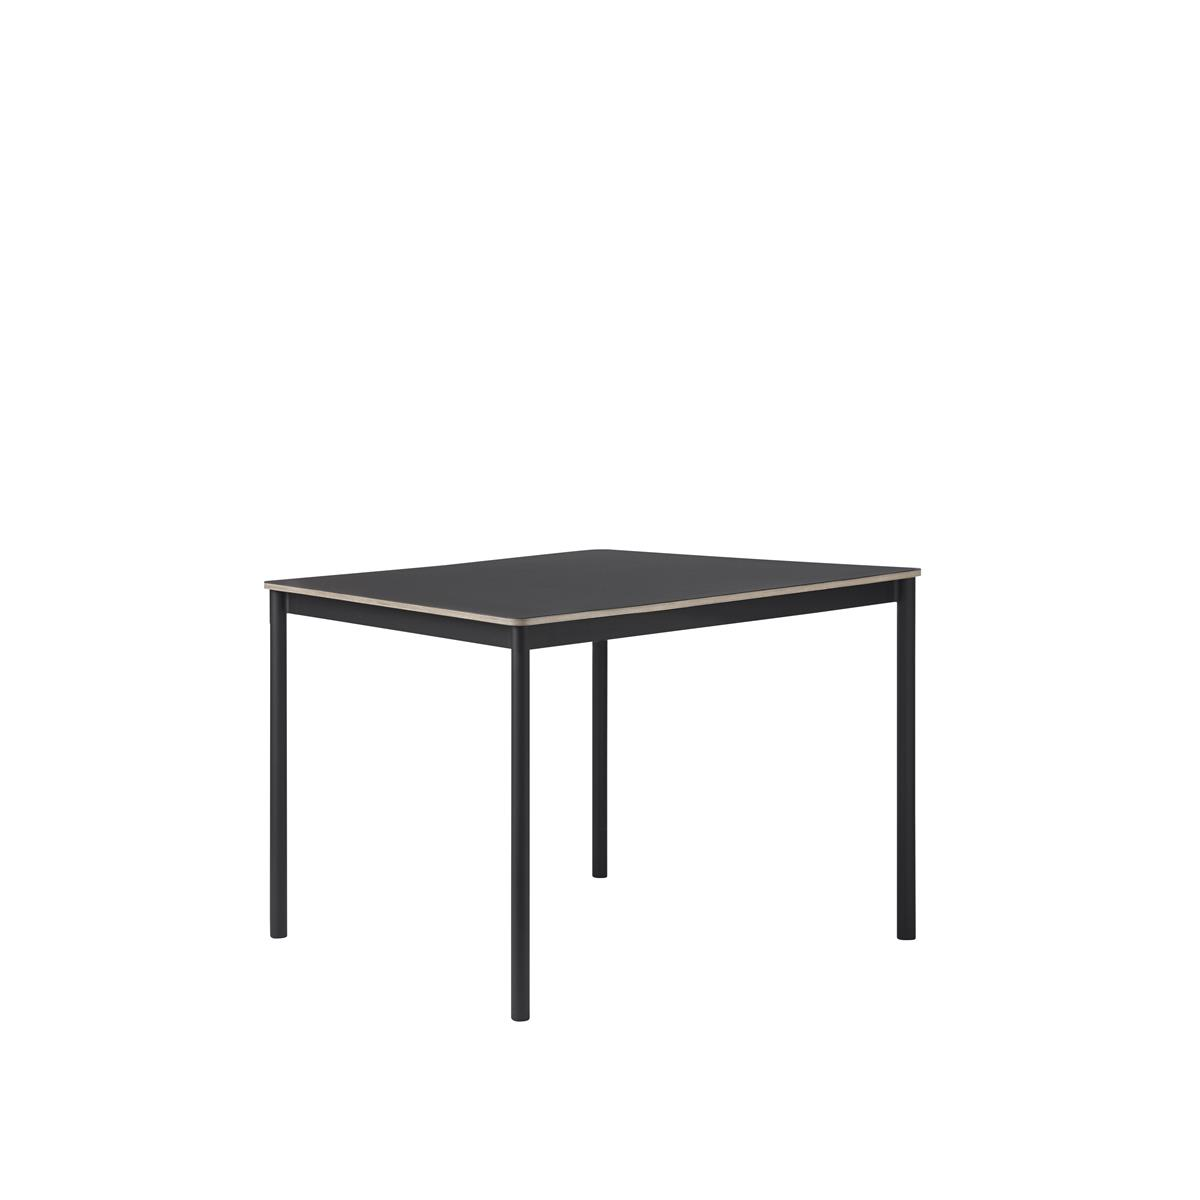 Base Table / 70 X 70  Linoleum - Plywood edges